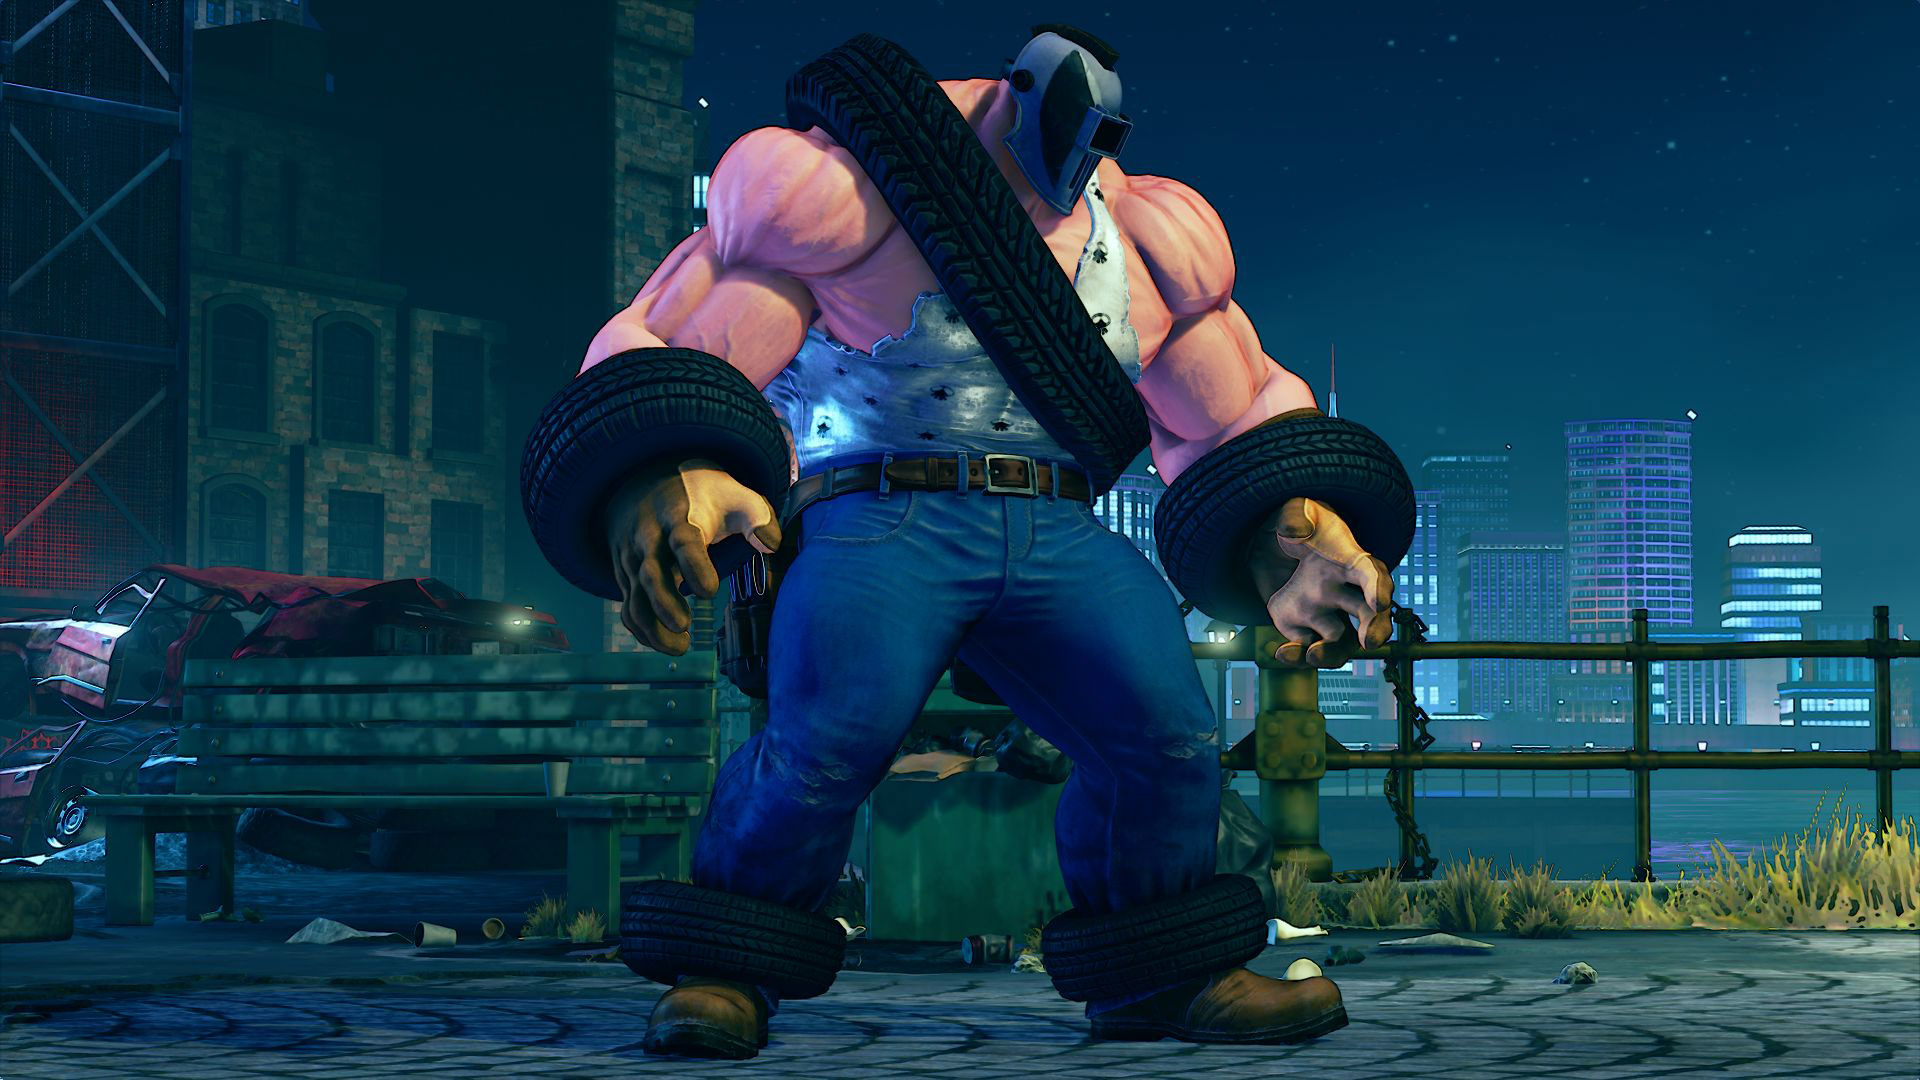 Abigail Street Fighter 5 6 out of 13 image gallery